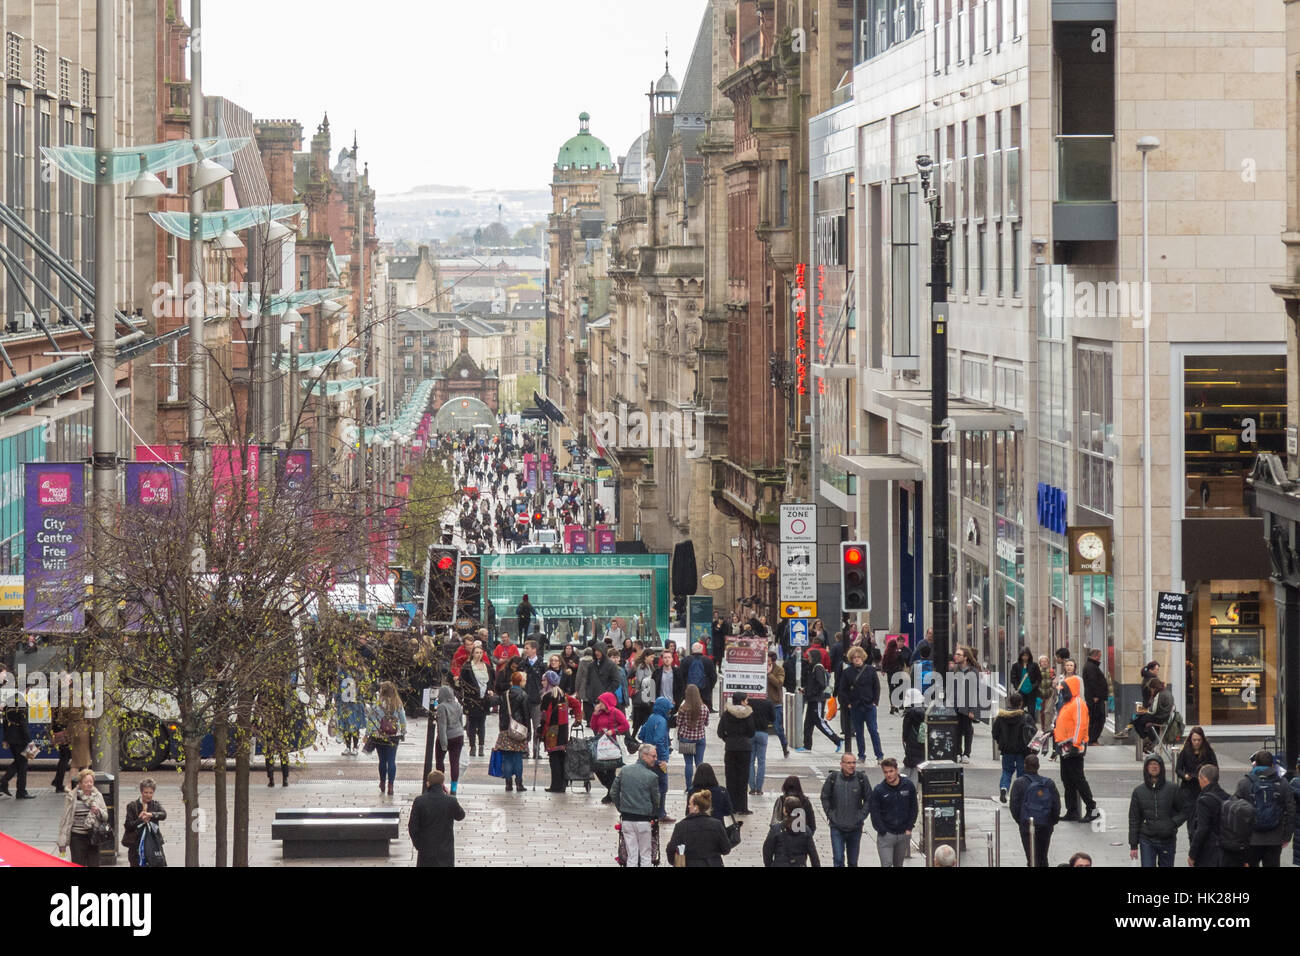 Buchanan Street, Glasgow, Scotland, UK Photo Stock